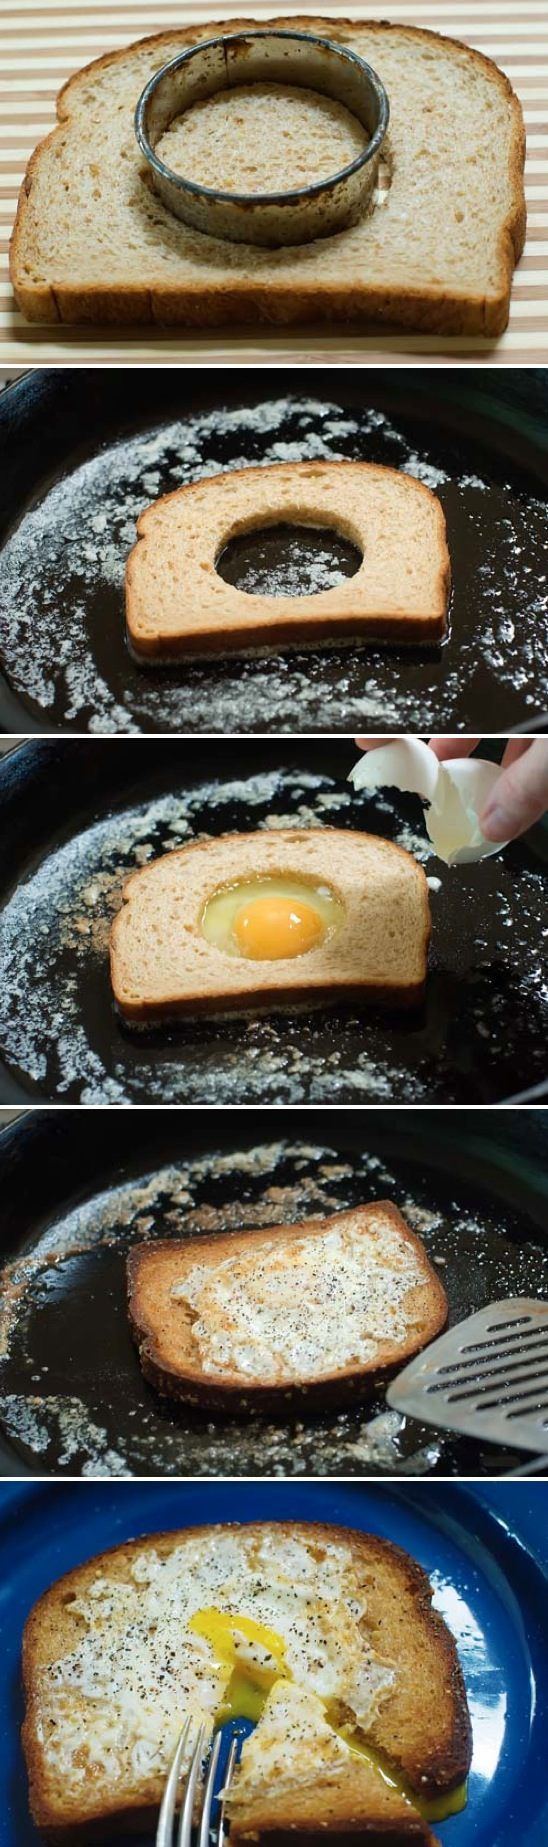 Easy Breakfast Ideas Egg in a Hole...I've made a few of these myself and they are comfort food in the FINEST :-)